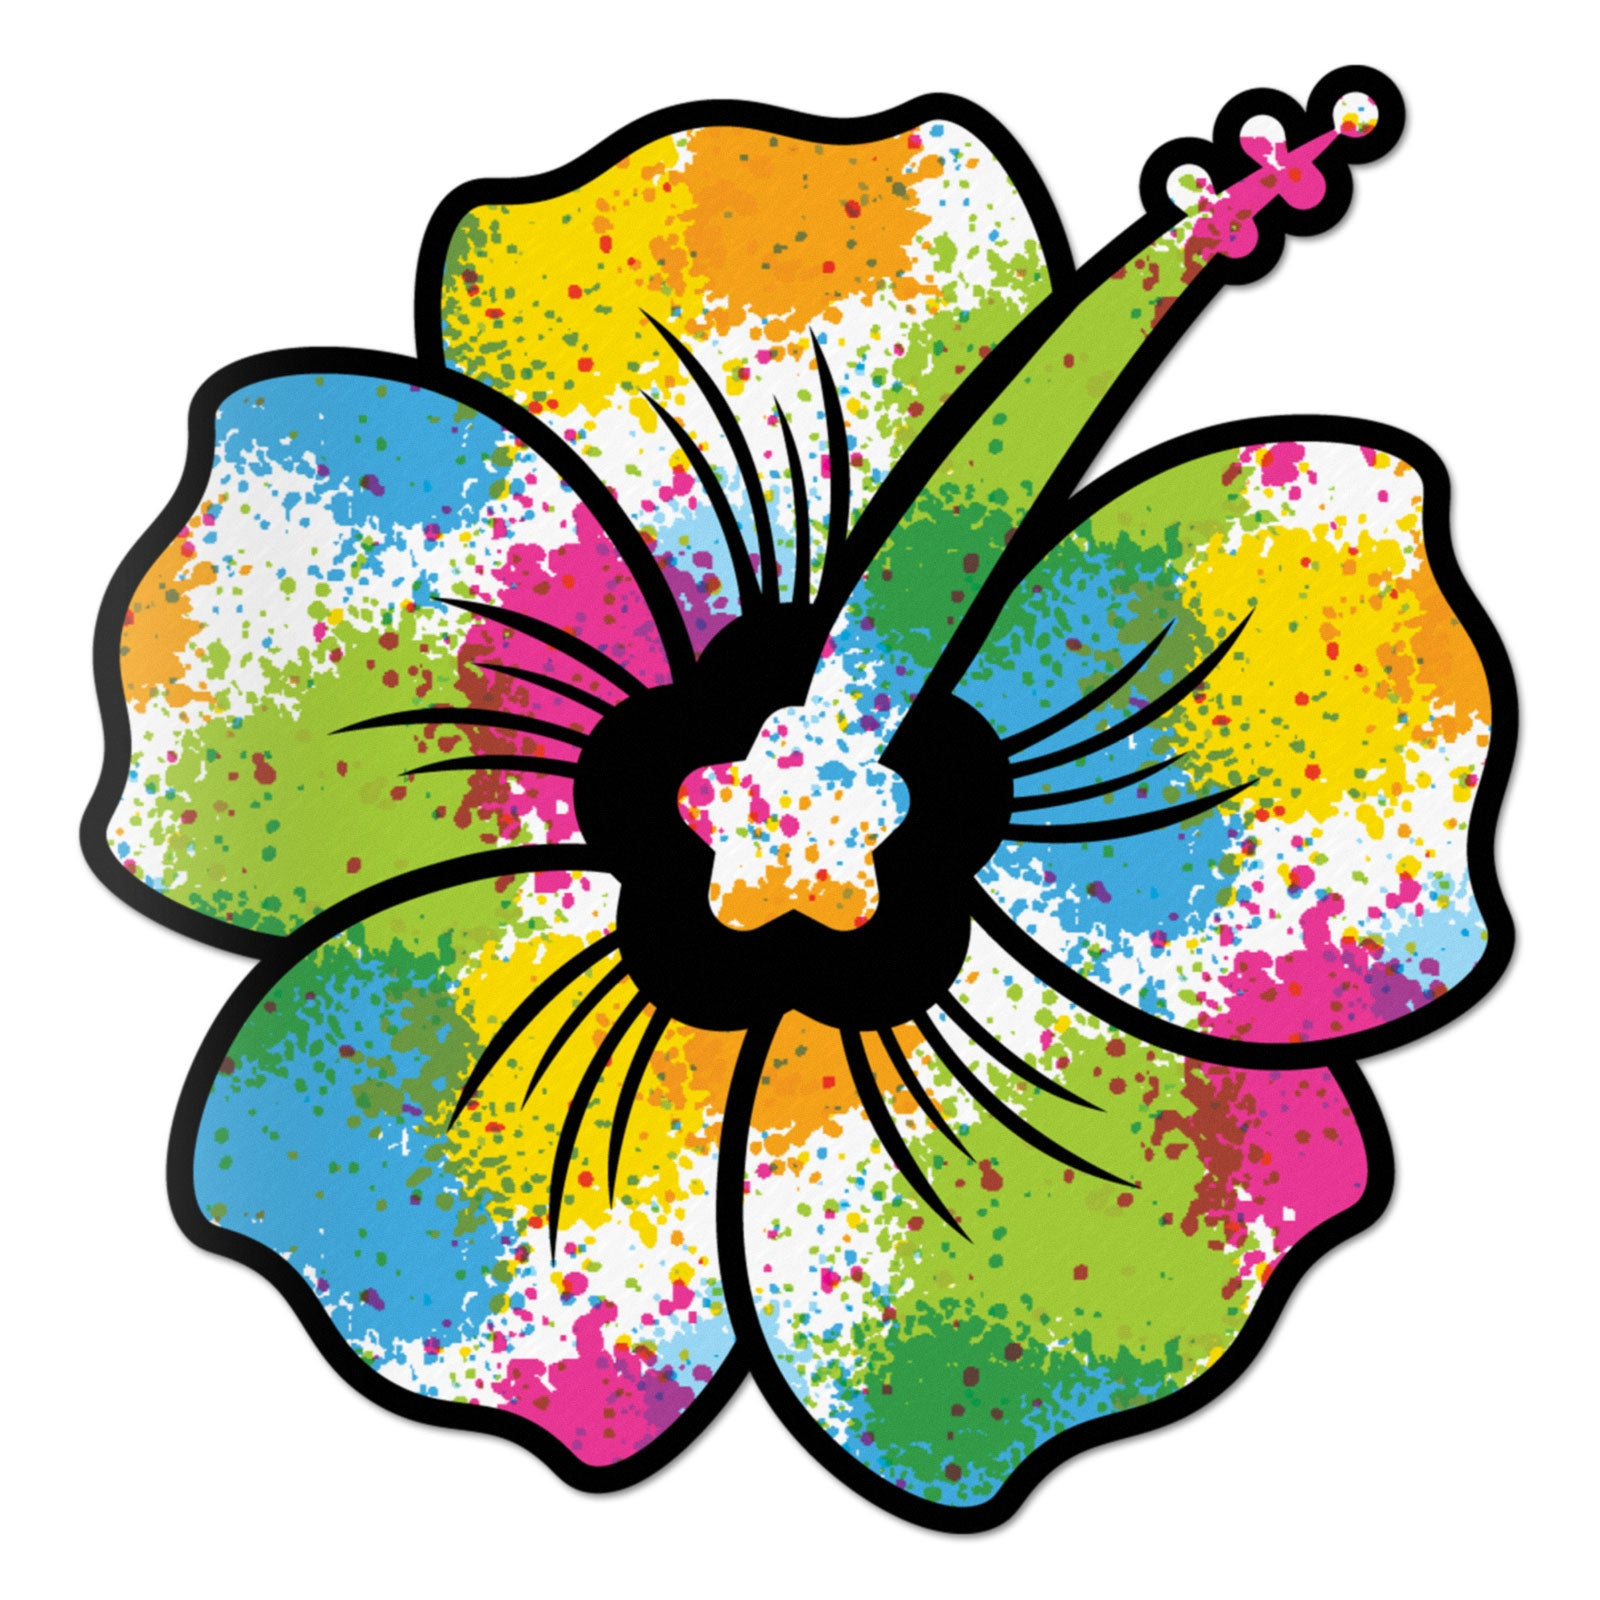 Hibiscus Decal Paint Splash Sticker Vinyl Rear Window Car Truck Large Flower Wall Water and Fade Resistant 6 Inches